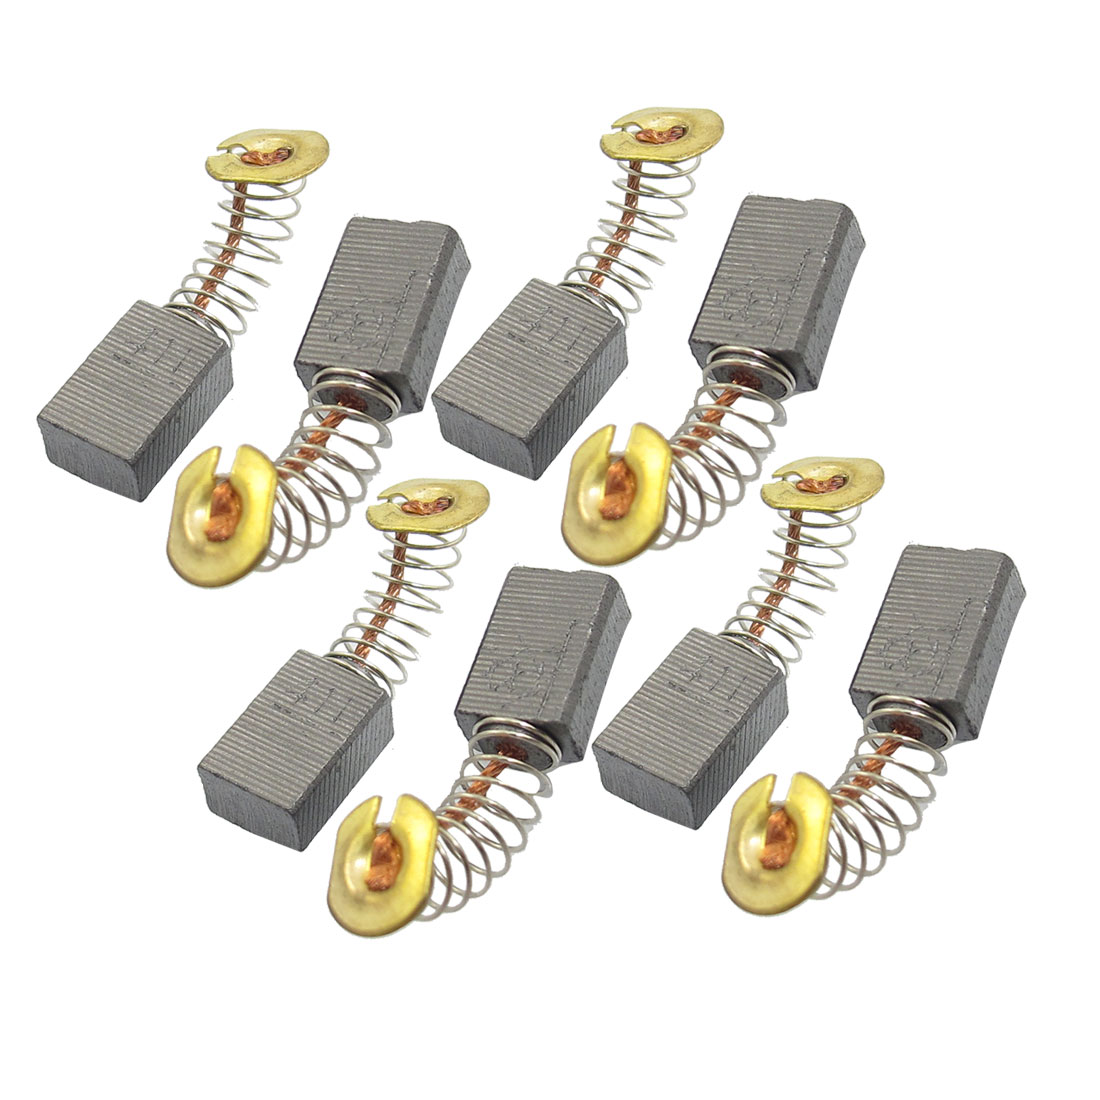 "8 Pcs Spring Type Motor Carbon Brushes 33/64"" x 5/14"" x 15/64"" for Makita 100 9523NB 9523B Angle Grinder"